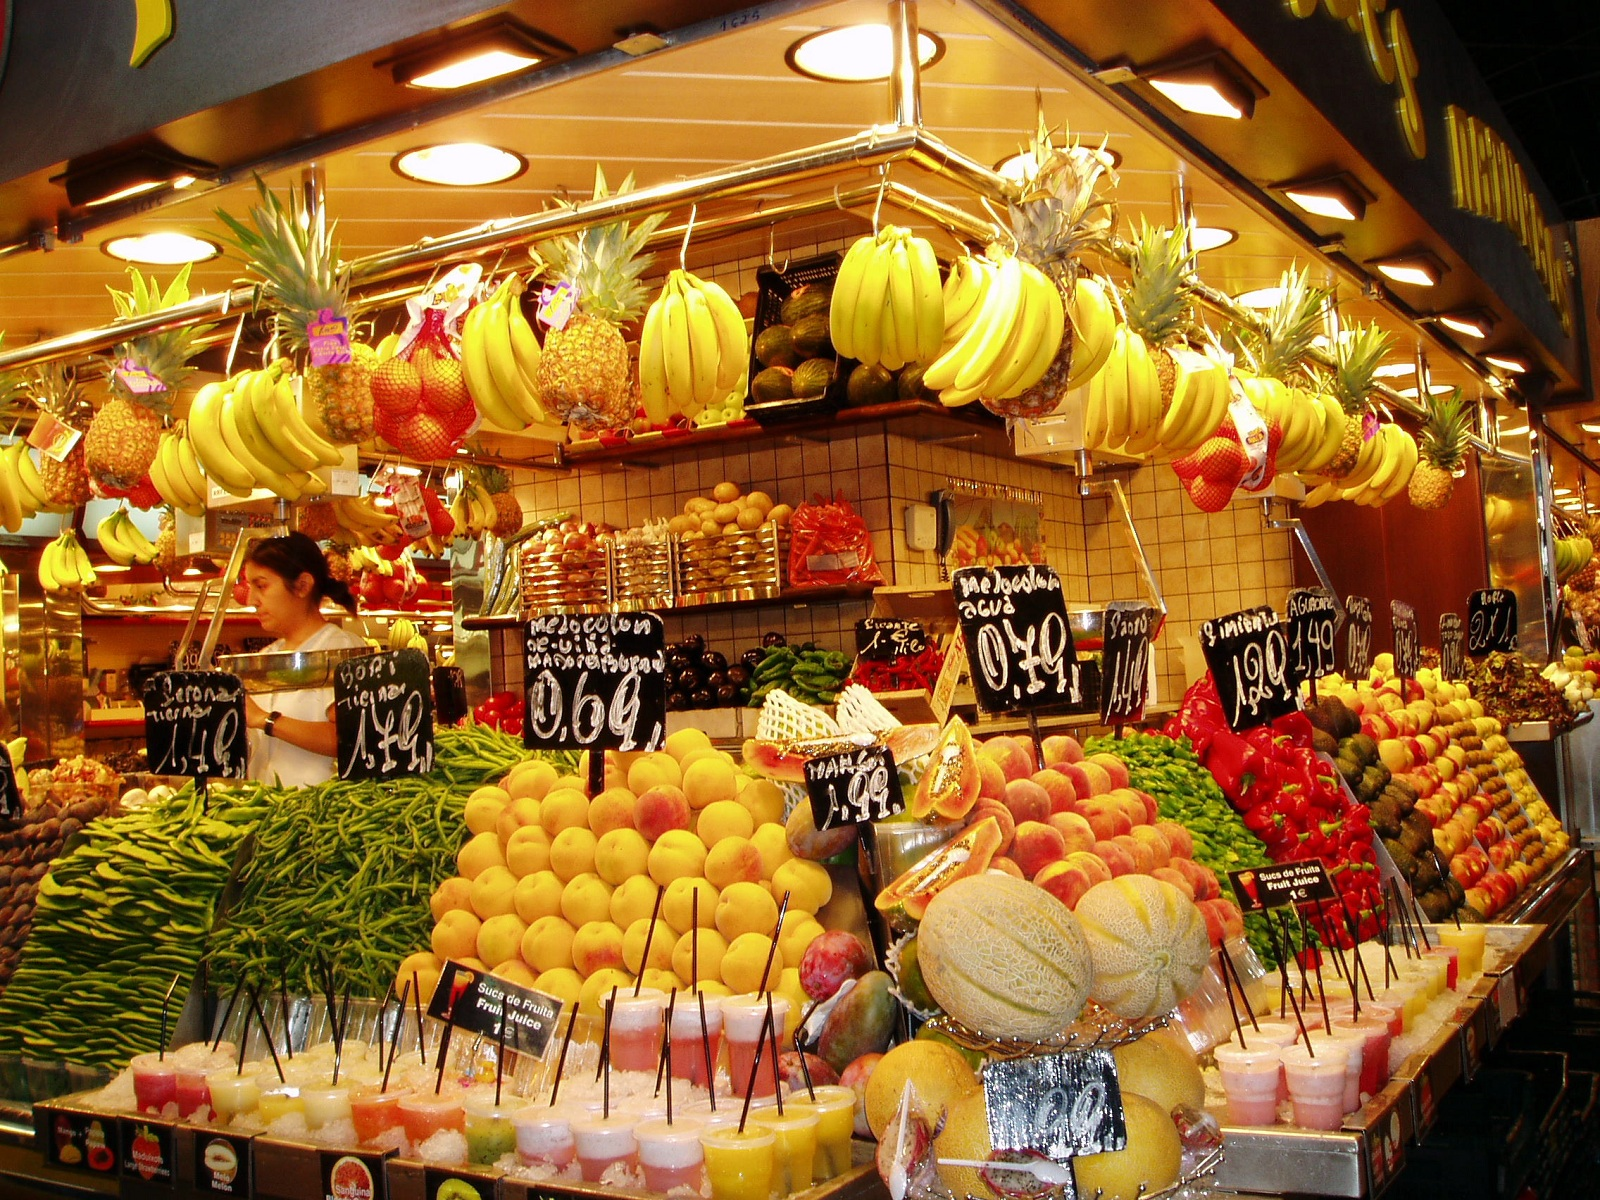 Fresh Food Market, Barcelona, Spain, La Boqueria presentation